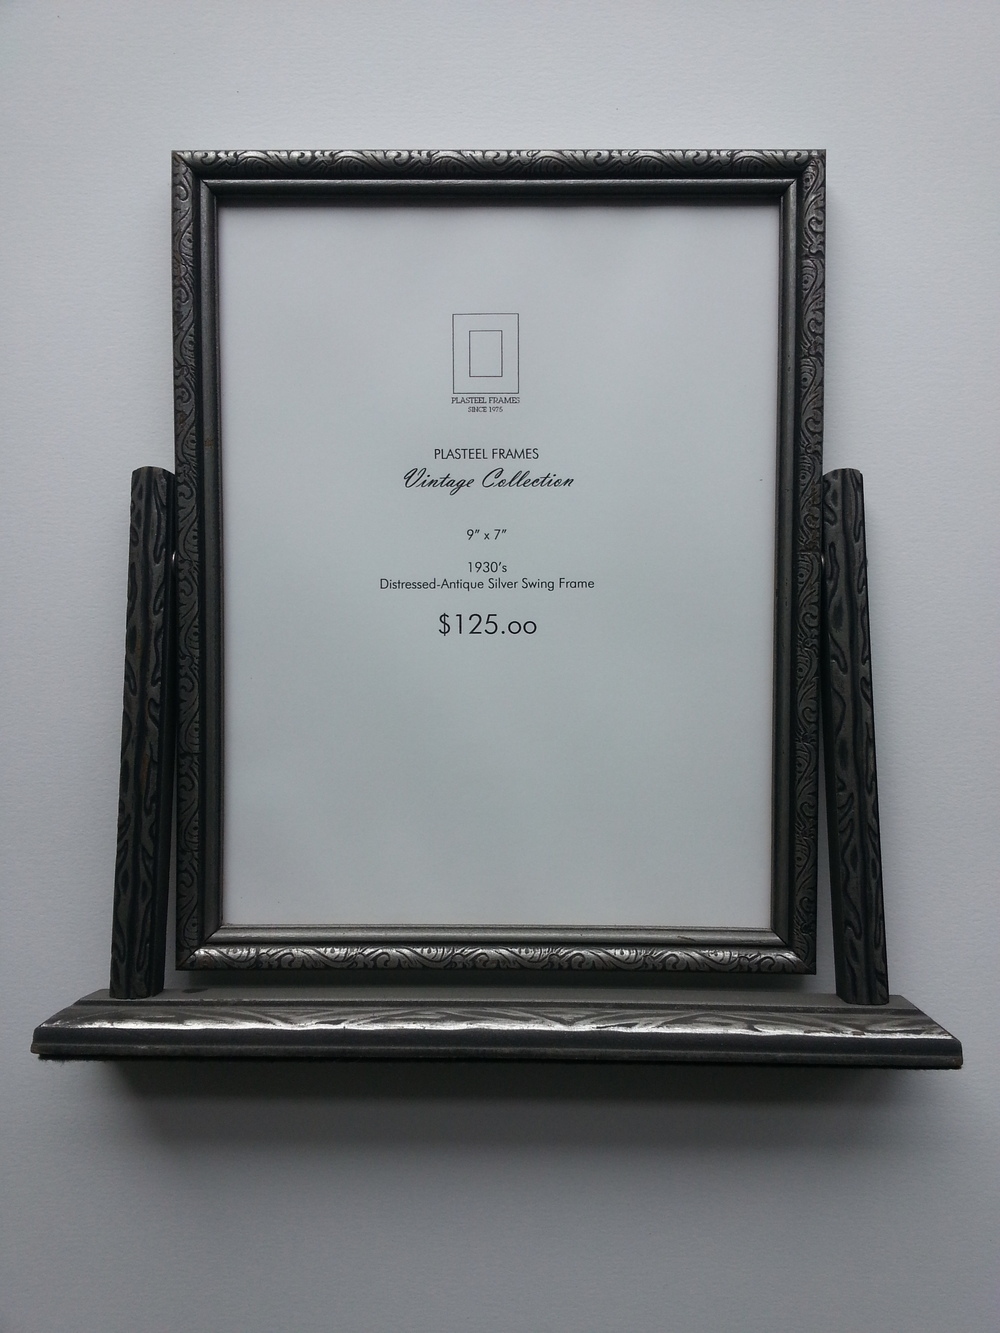 "Antique Silver Pressed Swing Frame, 1930's Frame R.S. 9"" x 7"" $125 Available"